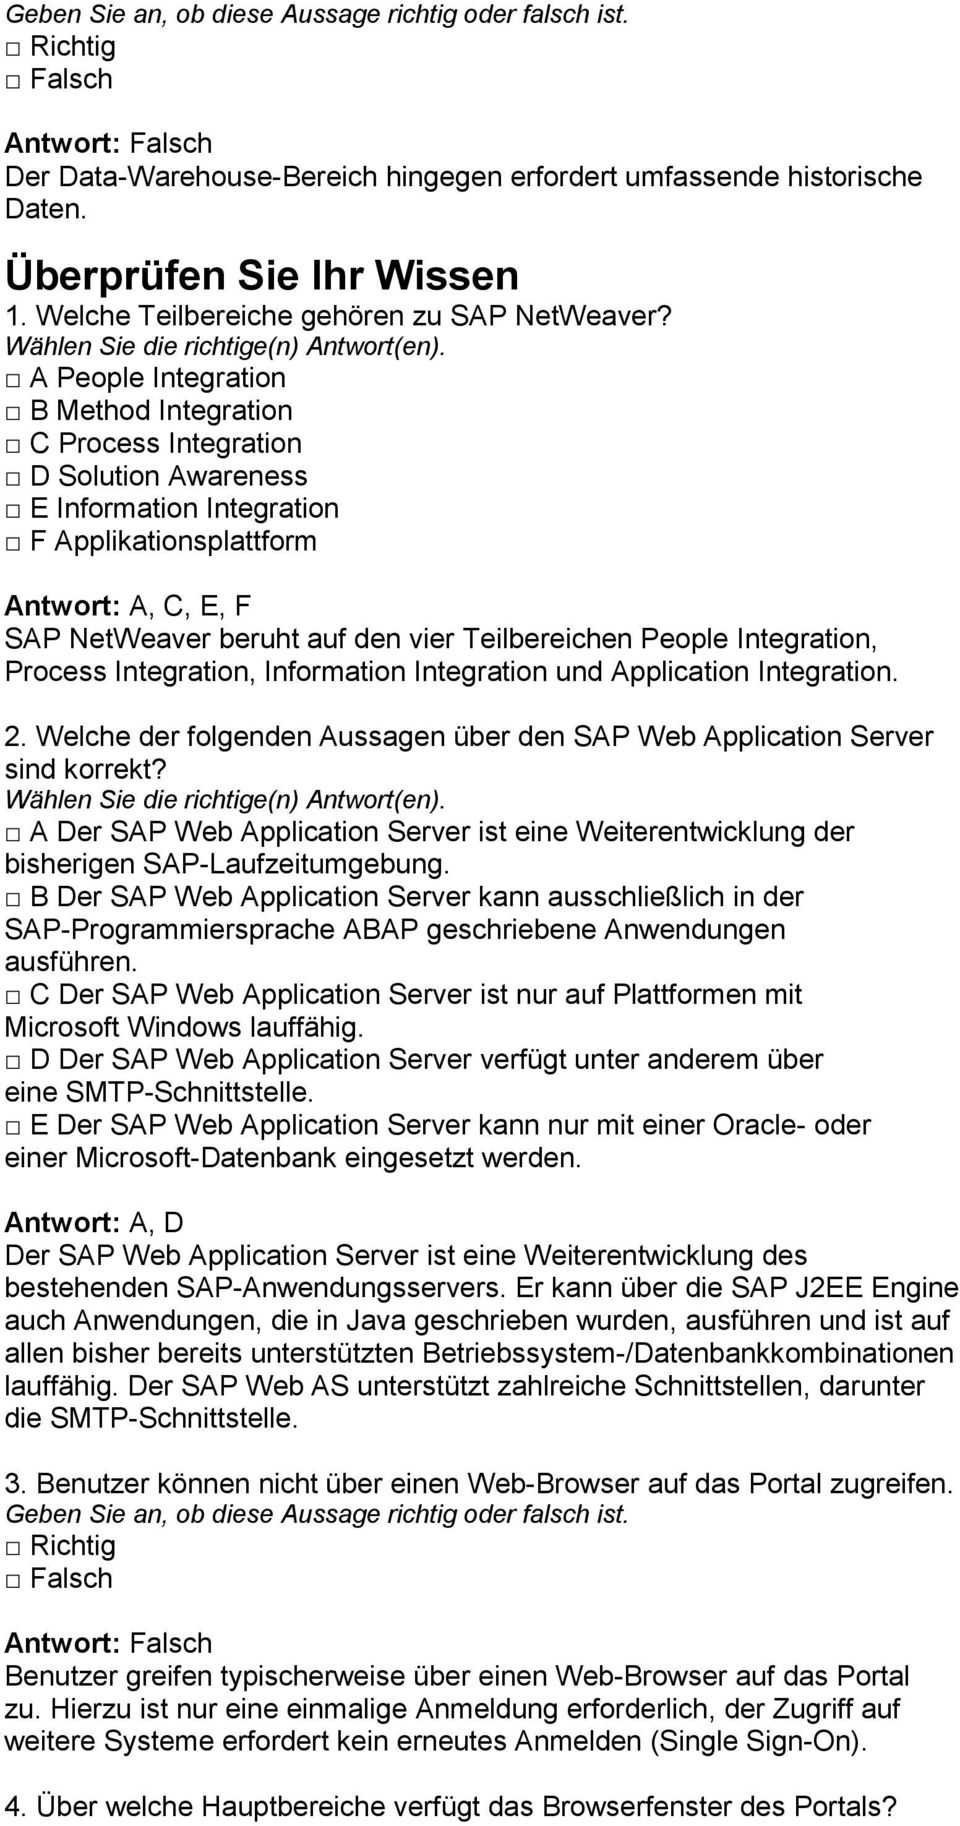 Teilbereichen People Integration, Process Integration, Information Integration und Application Integration. 2. Welche der folgenden Aussagen über den SAP Web Application Server sind korrekt?